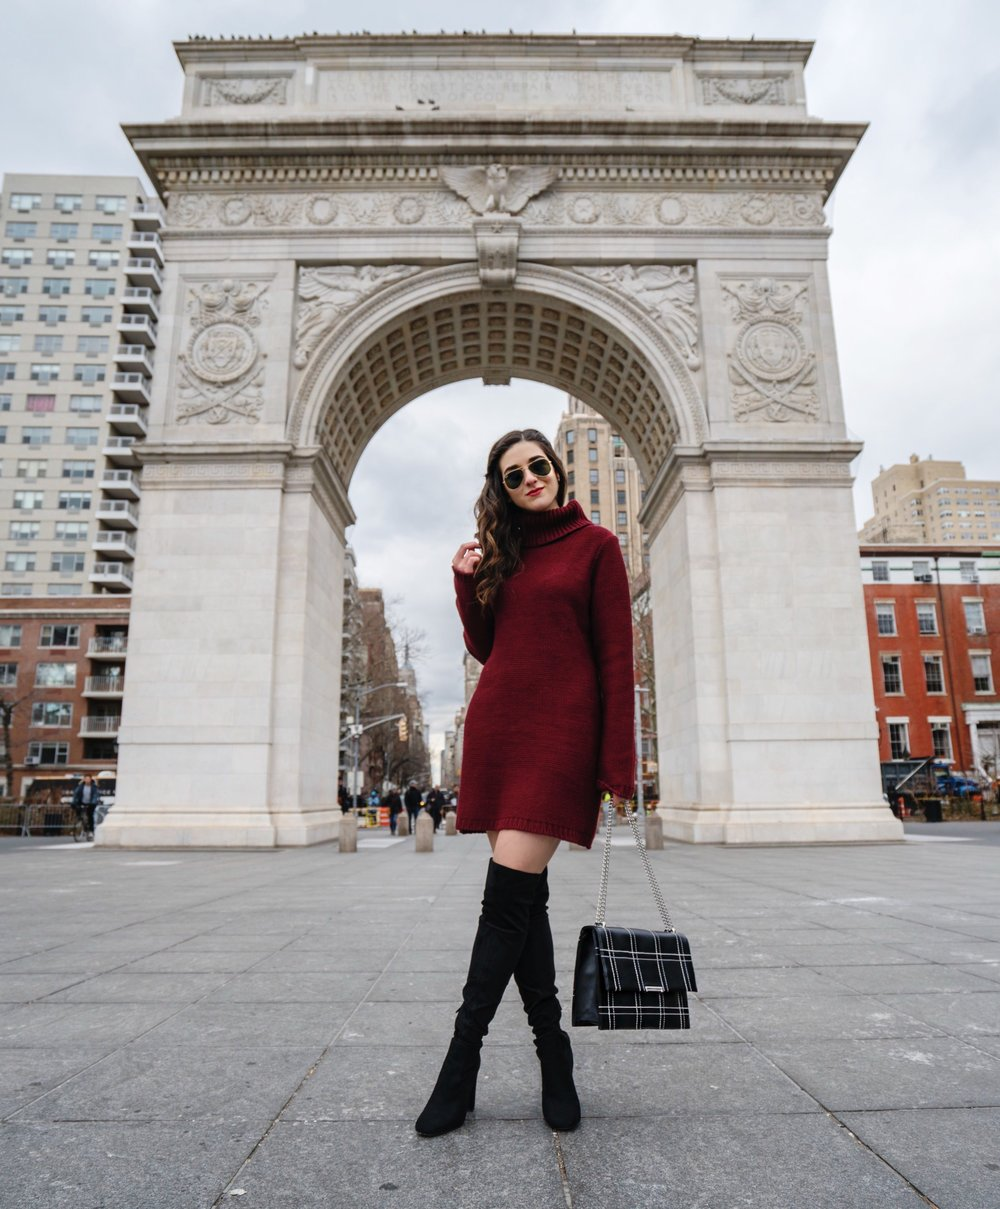 Maroon Sweater Dress OTK Boots My Biggest Blogging Mistake Esther Santer Fashion Blog NYC Street Style Blogger Outfit OOTD Trendy Red Girl Women Sunglasses RayBan Aviators Wearing Shopping Zara Casual Inspo New York City Photoshoot Grid Bag Purse Hair.JPG